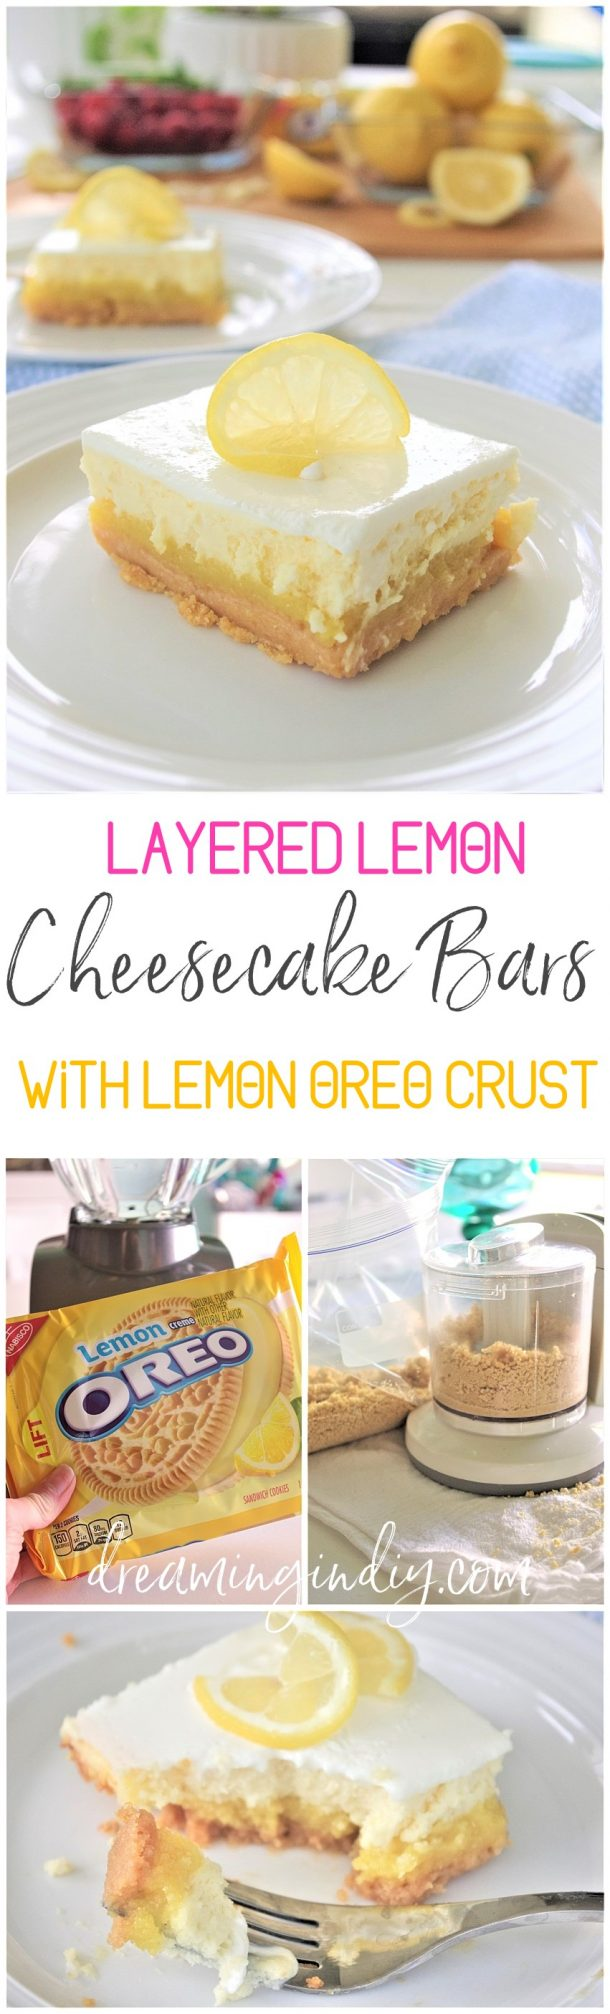 Yummy Lemon Sour Cream Cheesecake Dessert Bars with Lemon Oreo Crust - Easy Layered Treats Recipe by Dreaming in DIY #lemondesserts #lemonrecipes #easylemonrecipes #lemon #lemontreats #easterdesserts #mothersdaydesserts #springdesserts #holidaydesserts #summerdesserts